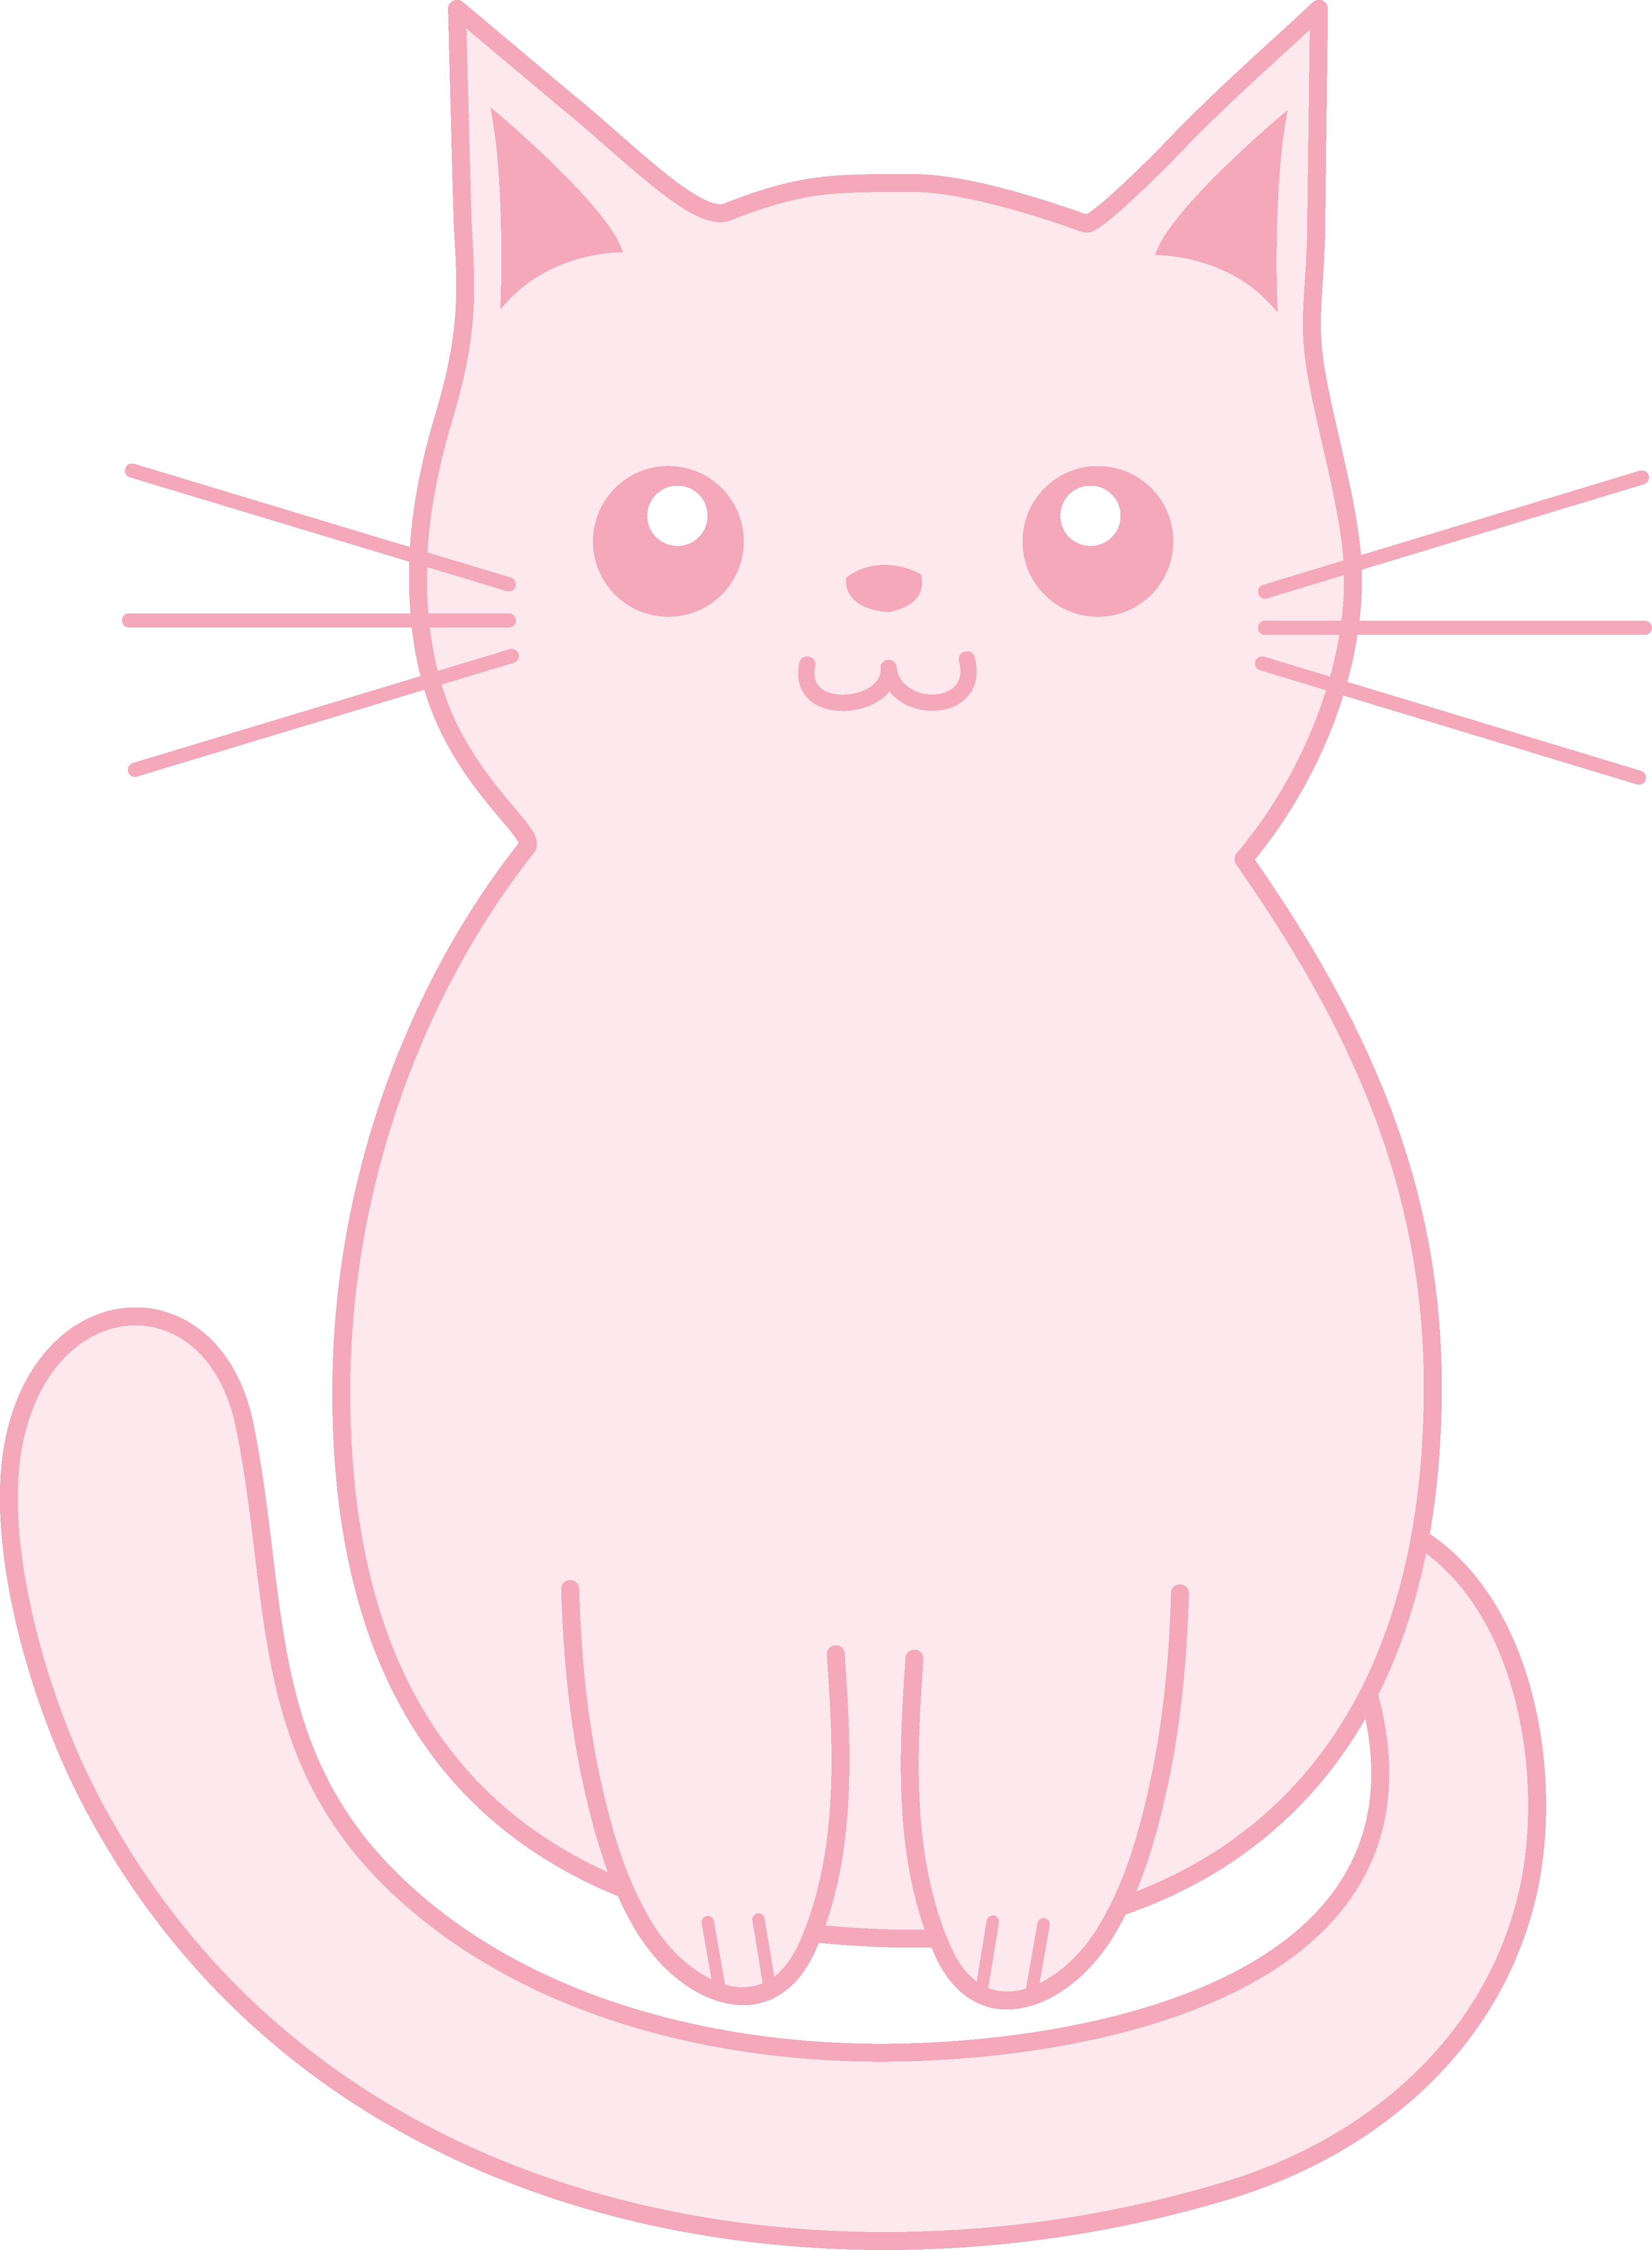 Kitty Clipart & Kitty Clip Art Images.